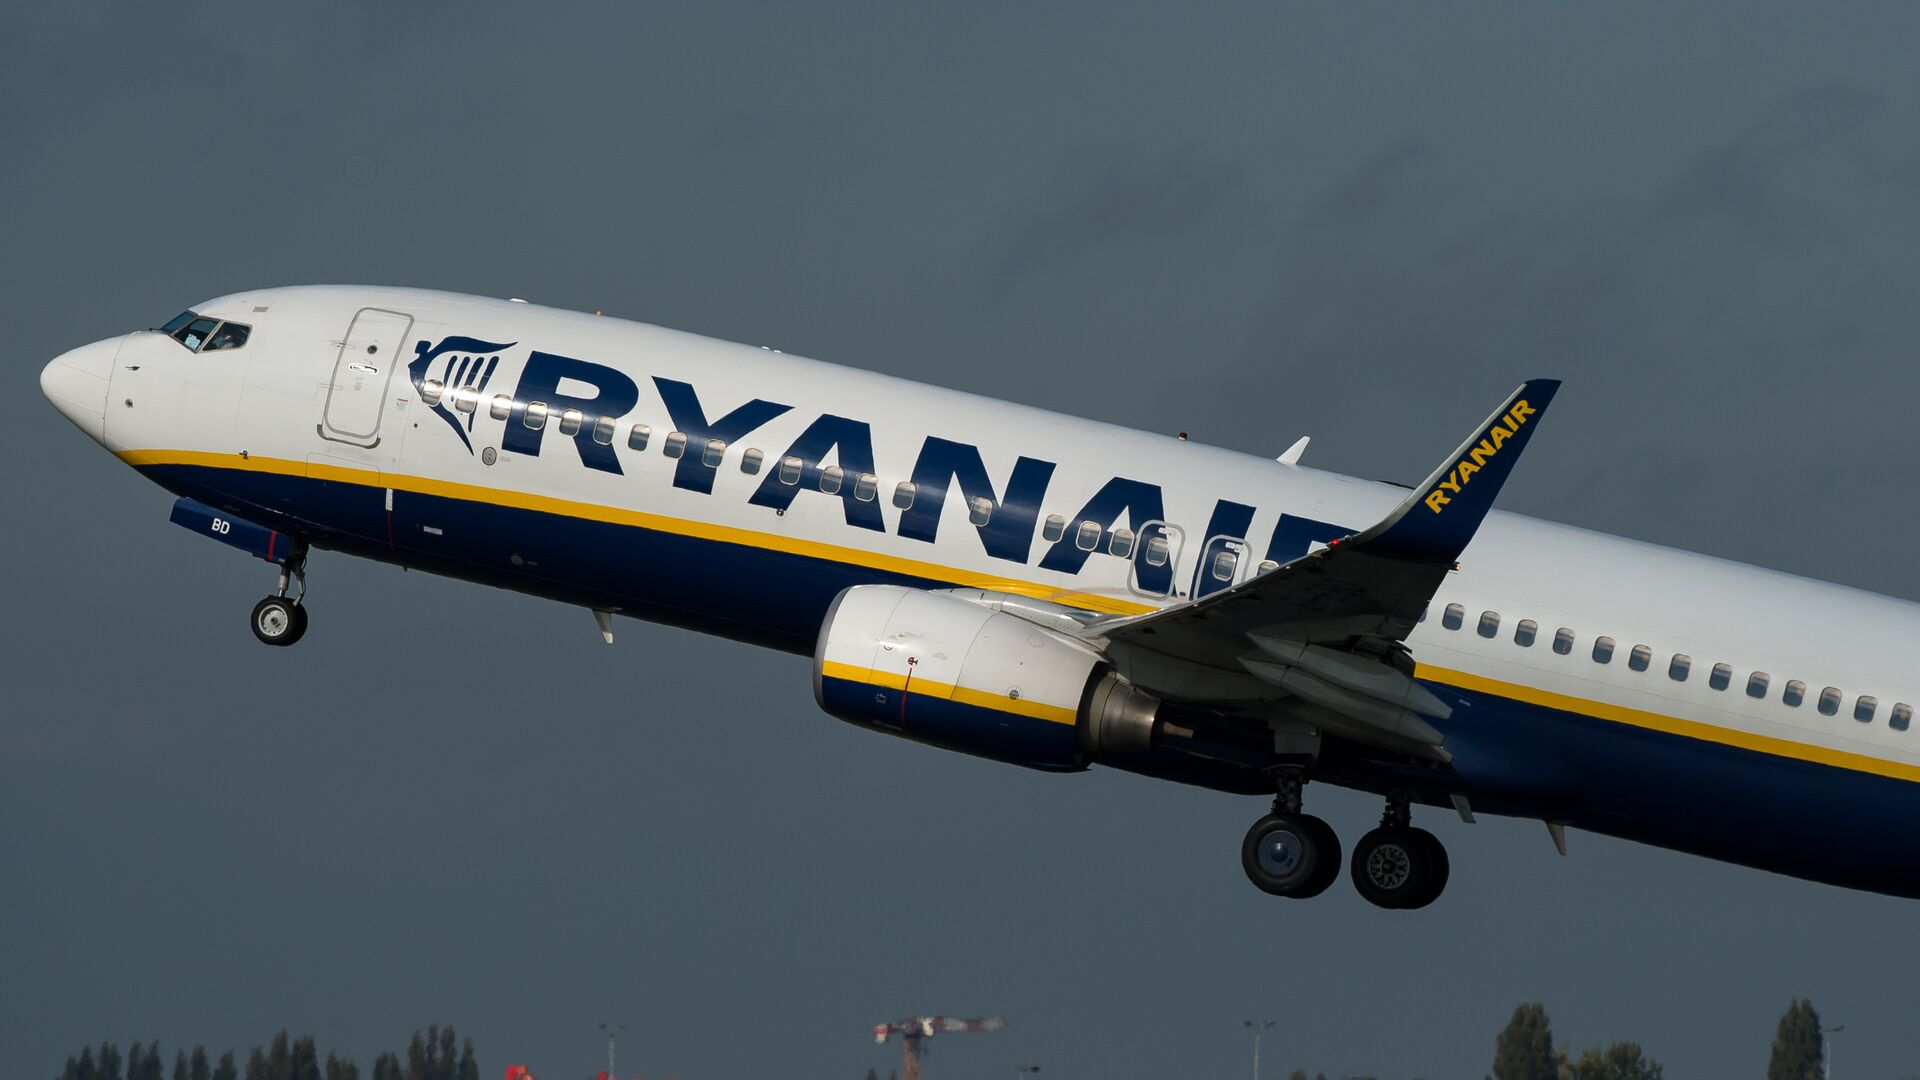 An 737 Boeing plane of the Ryanair company takes off, on October 11, 2014 at the Lille-Lesquin airport, northern France. - Sputnik Mundo, 1920, 26.05.2021